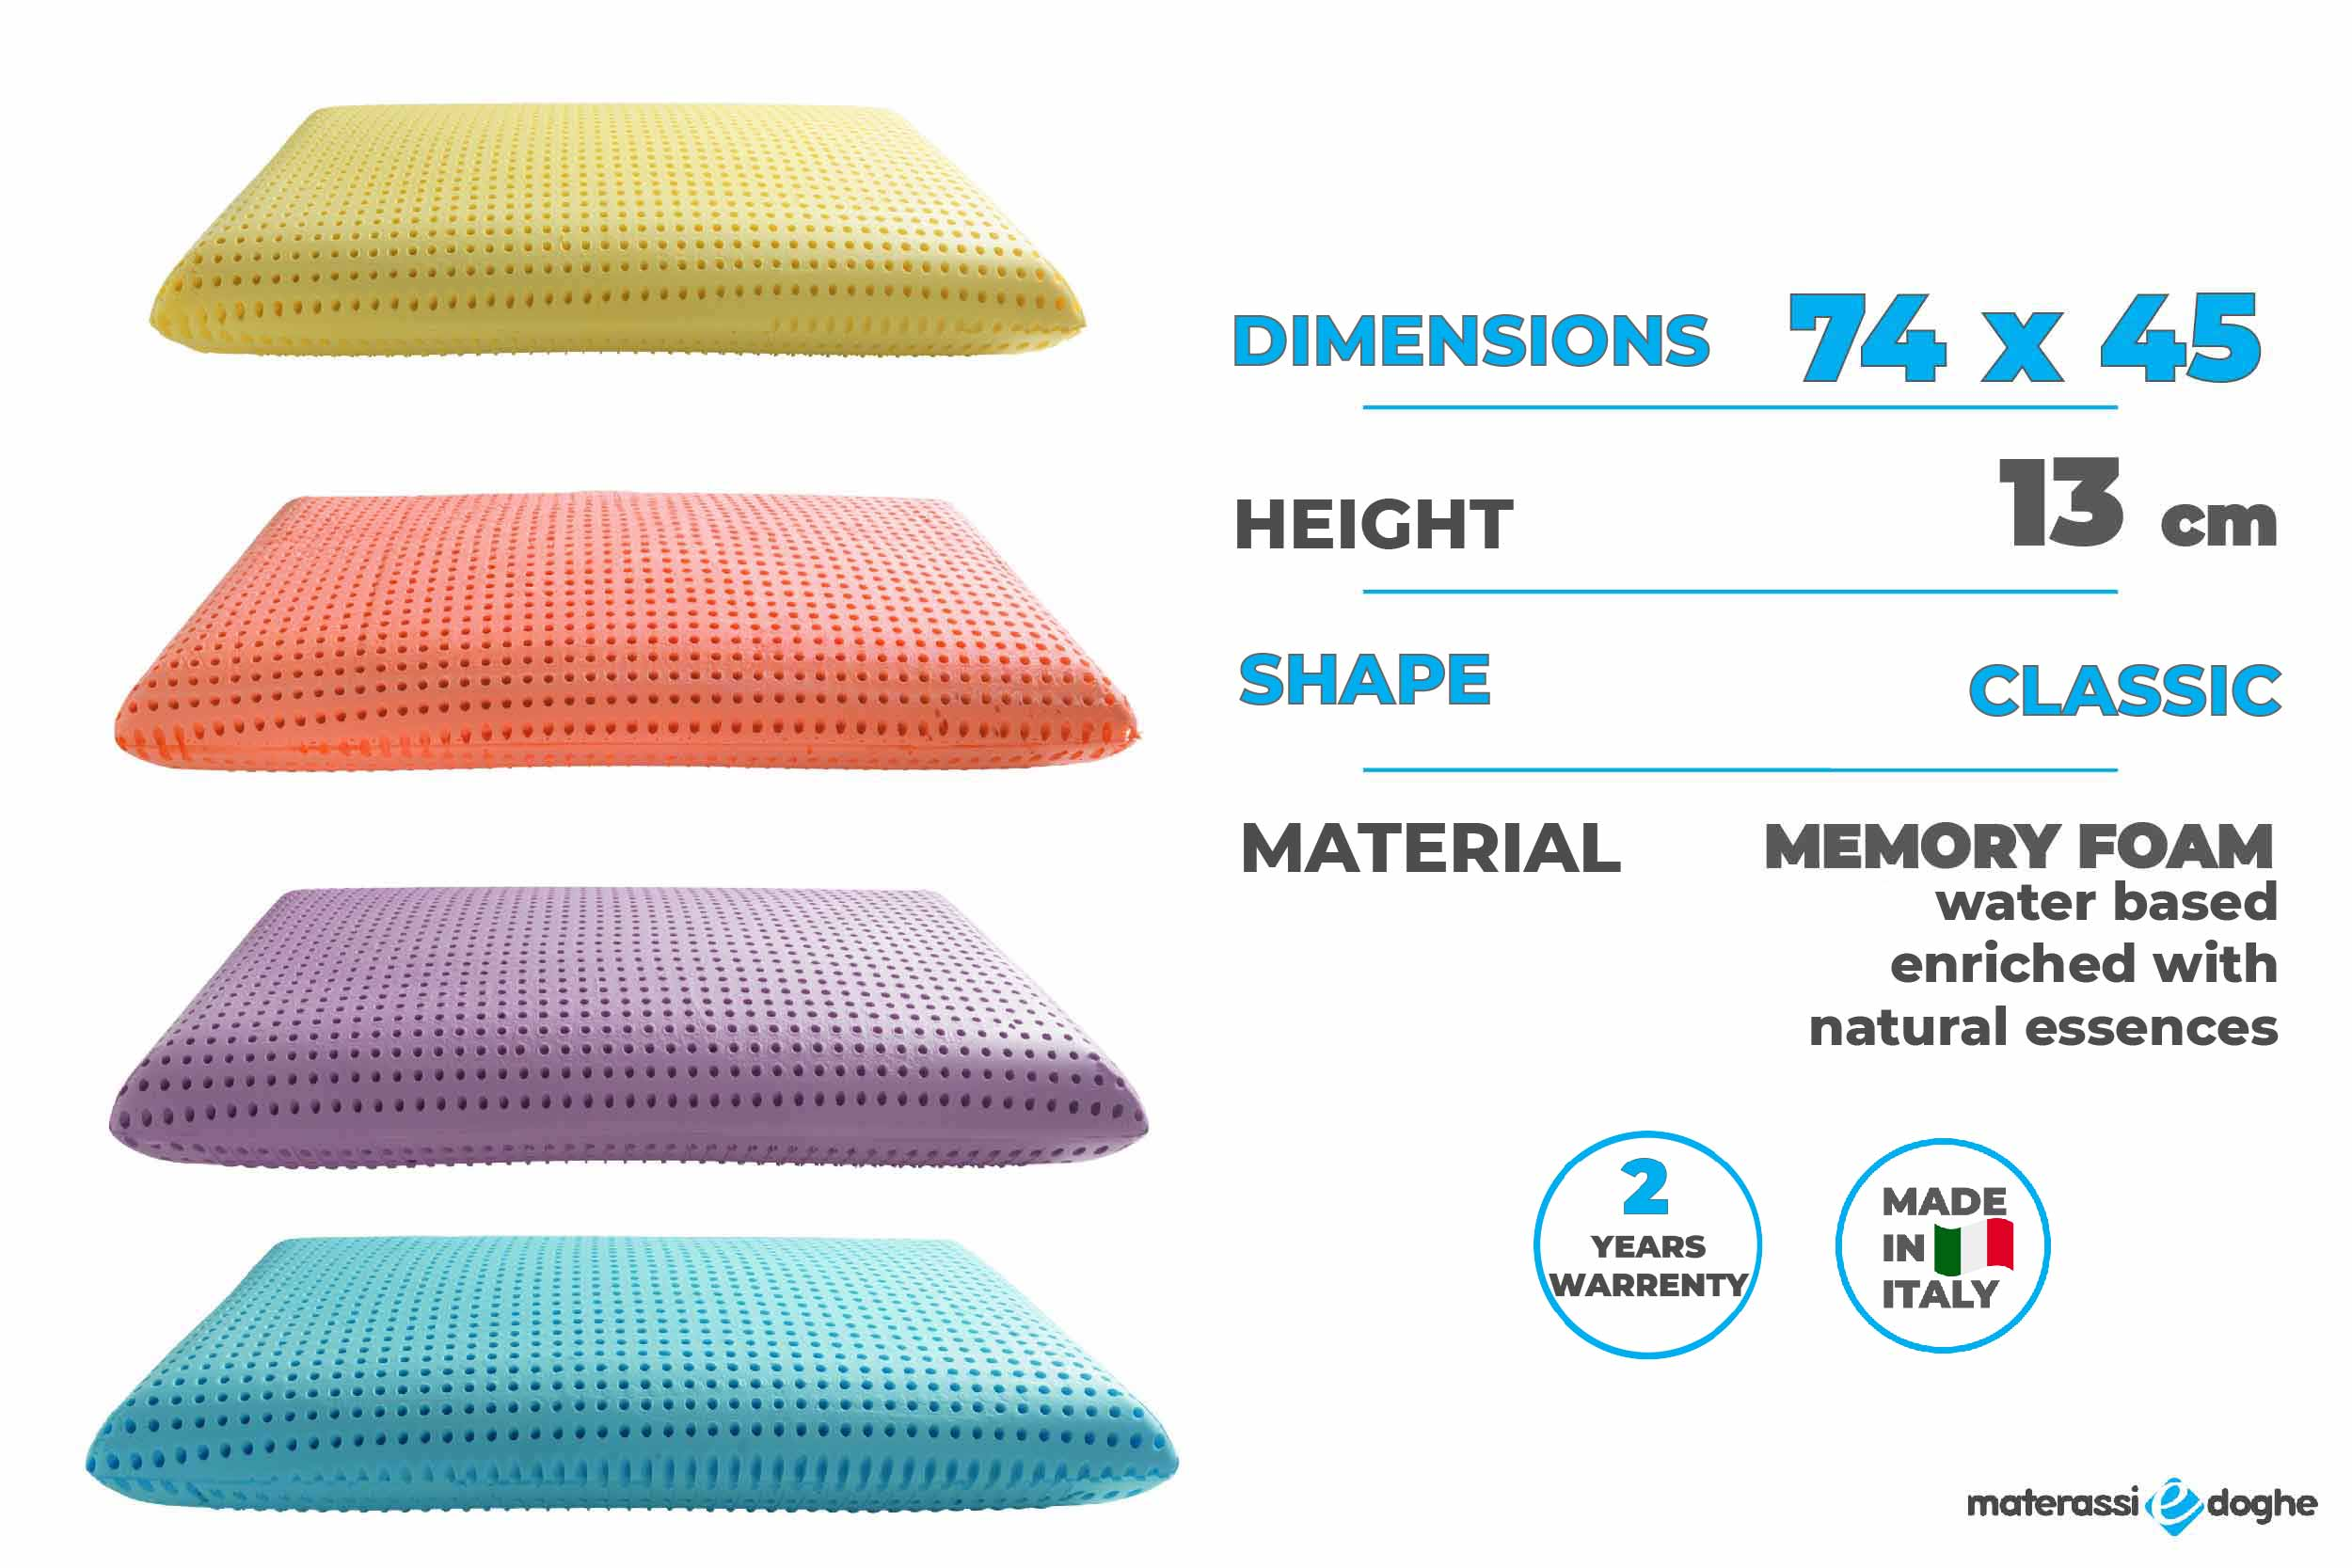 Water Based Memory Foam Pillow Enriched With Natural Essences Highly Breathable Materassi E Doghe